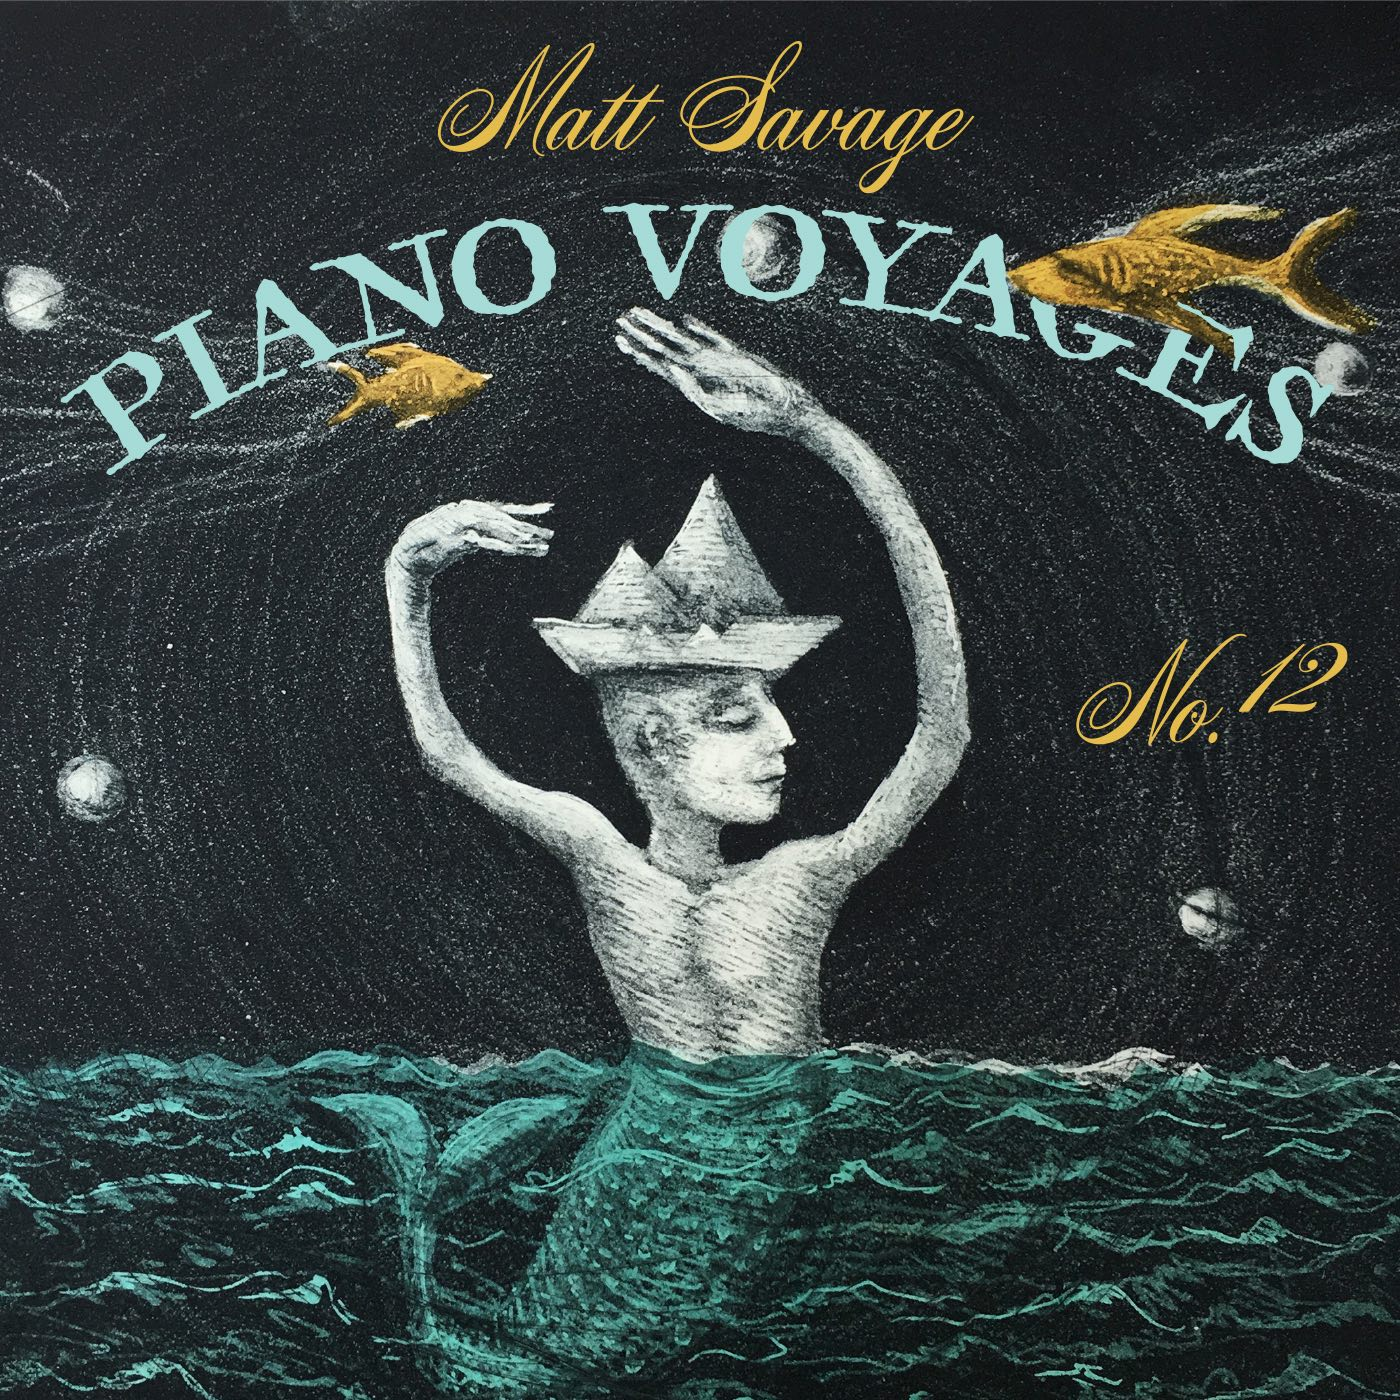 Piano Voyages Album Art HiRes